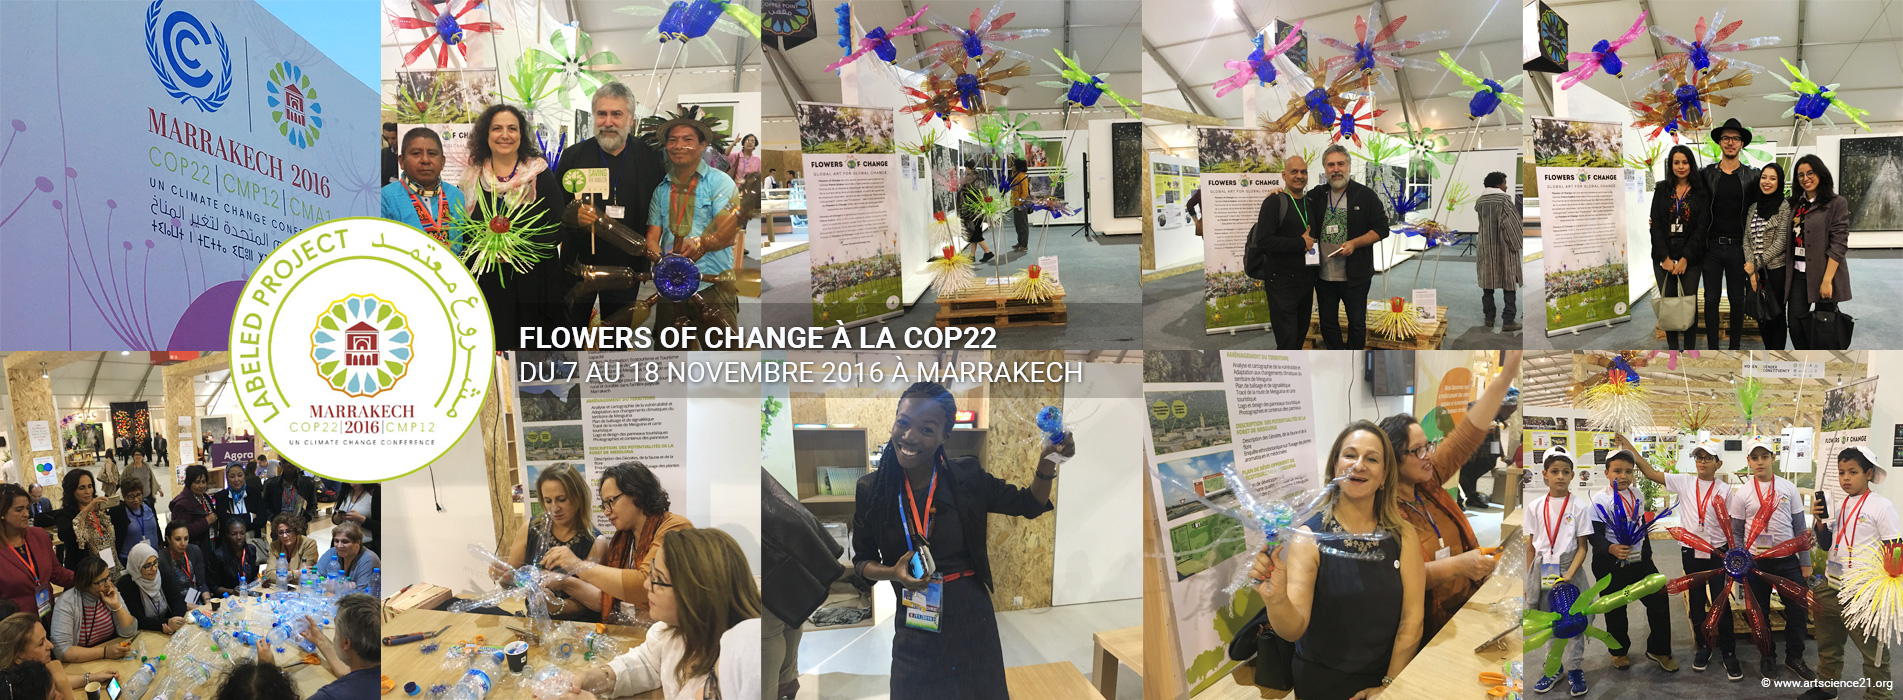 Flowers of Change à la COP22